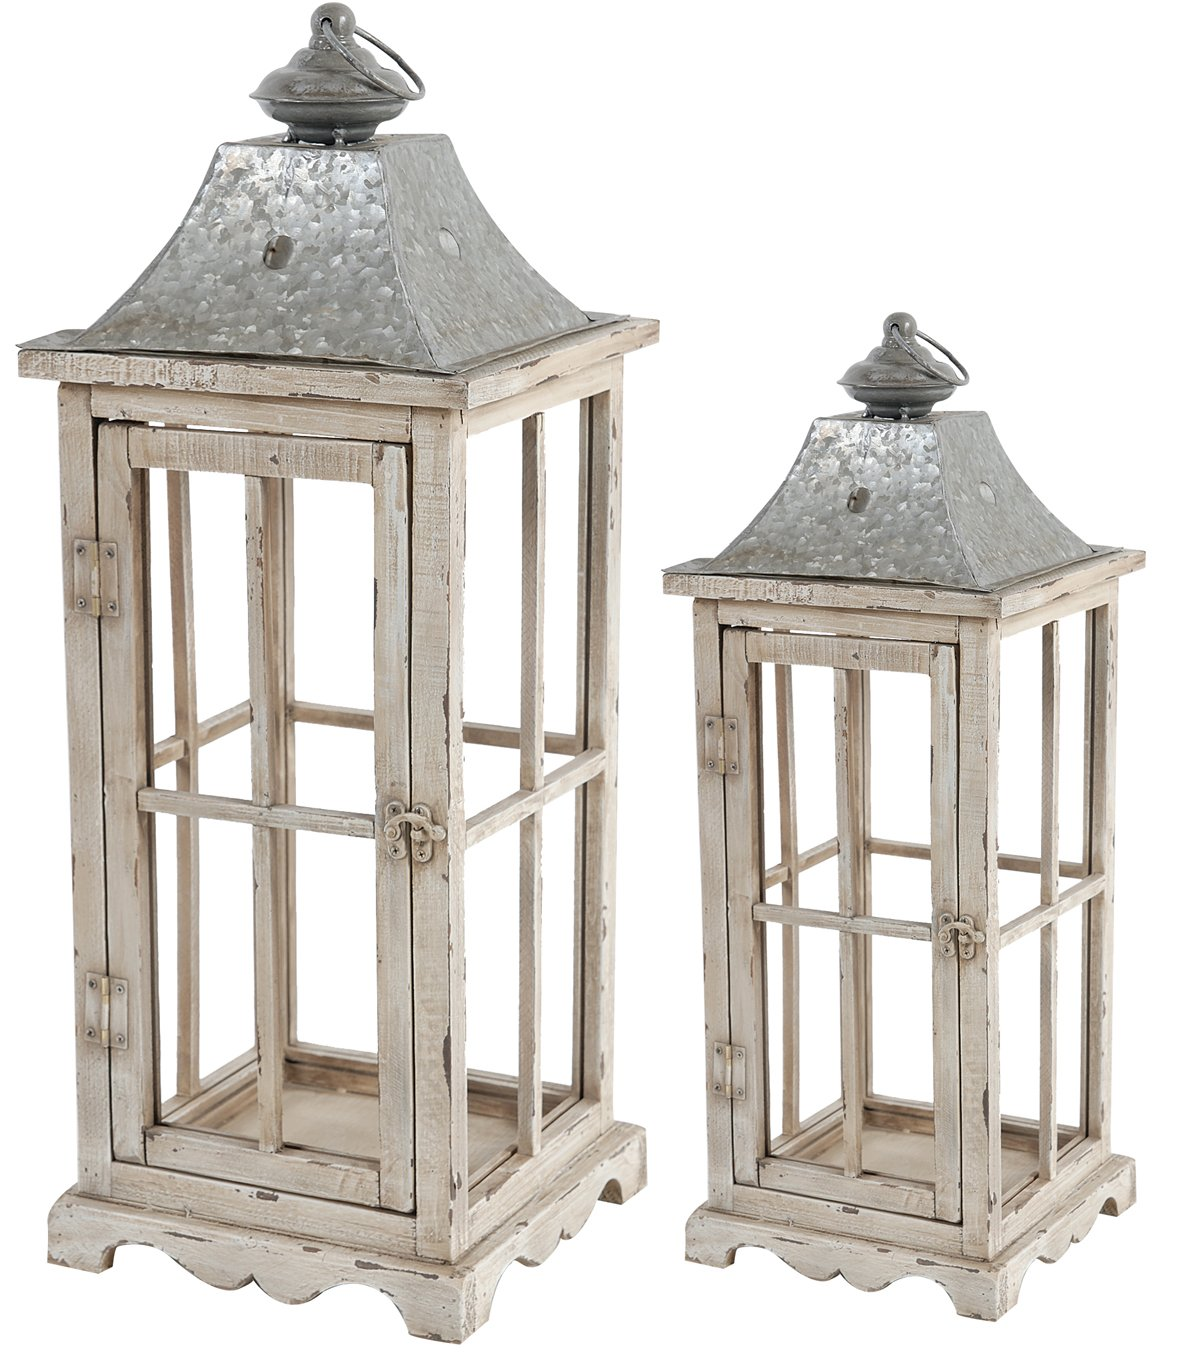 A&B Home 32877 Evelyn Enclosed Lanterns With Handle, Square, Set of 2